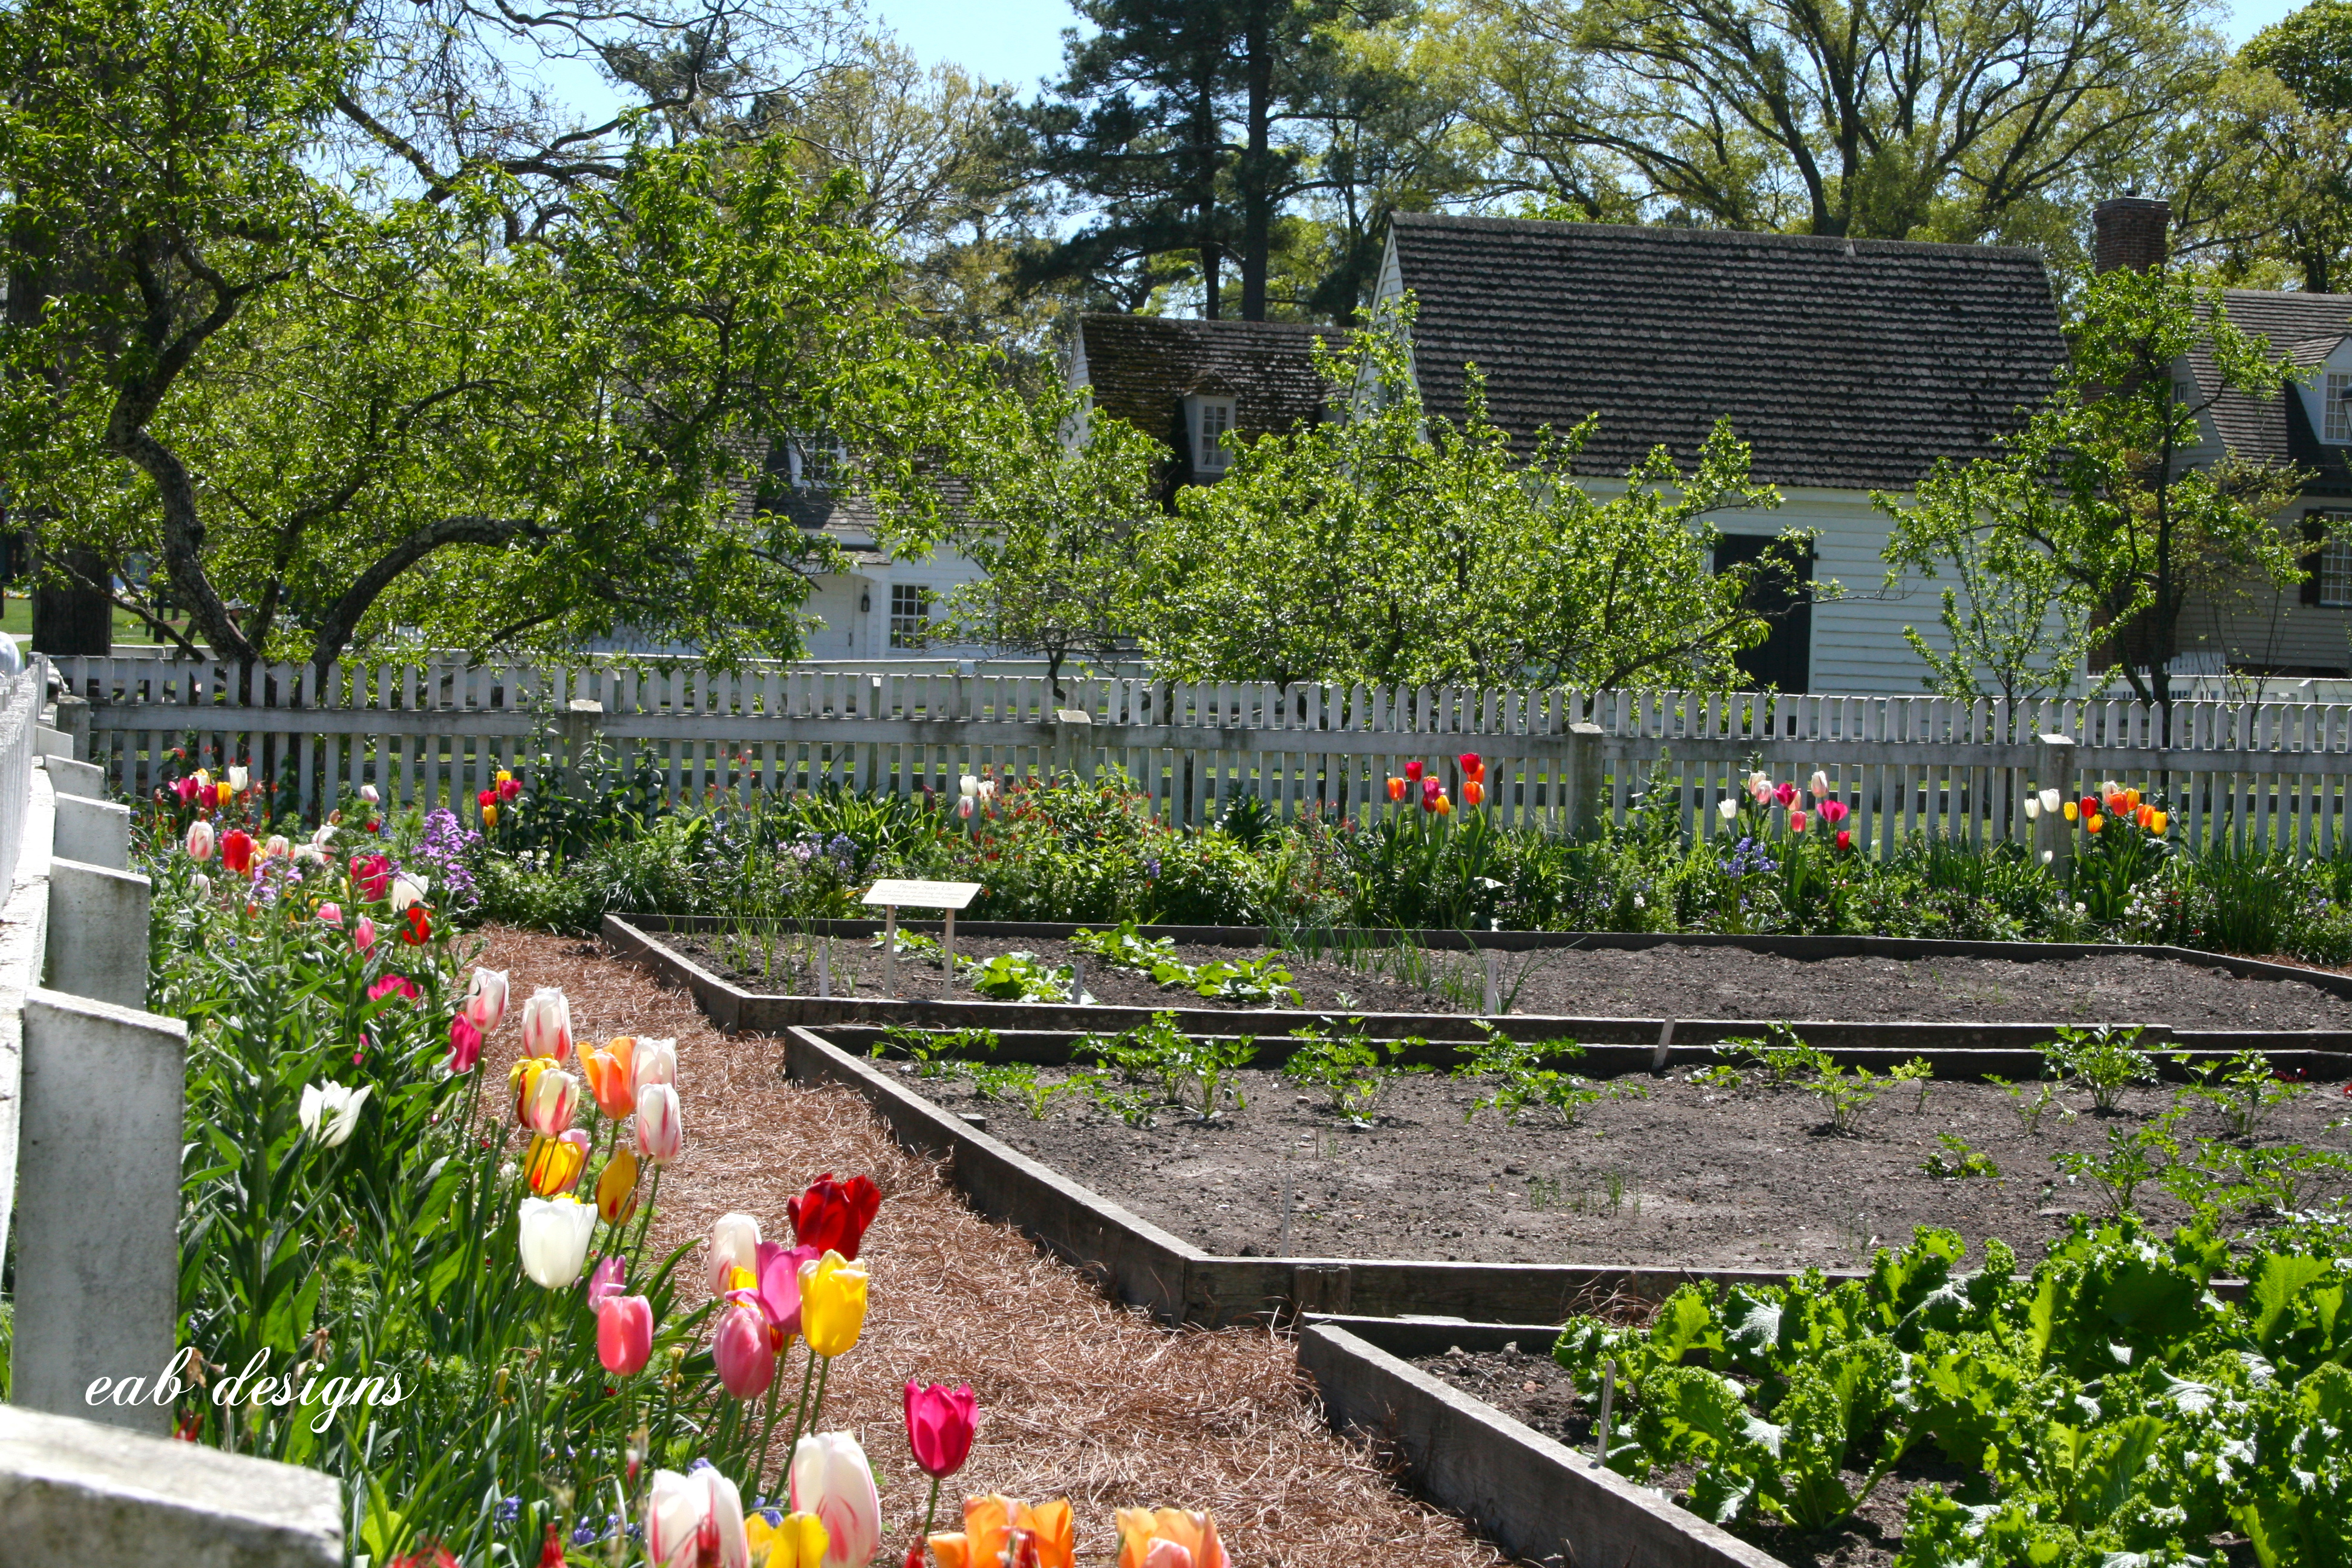 As Iu0027m In The Process Of Planning Our Own Kitchen Garden, It Was The  Perfect Time To Visit The Gardens At Colonial Williamsburg.